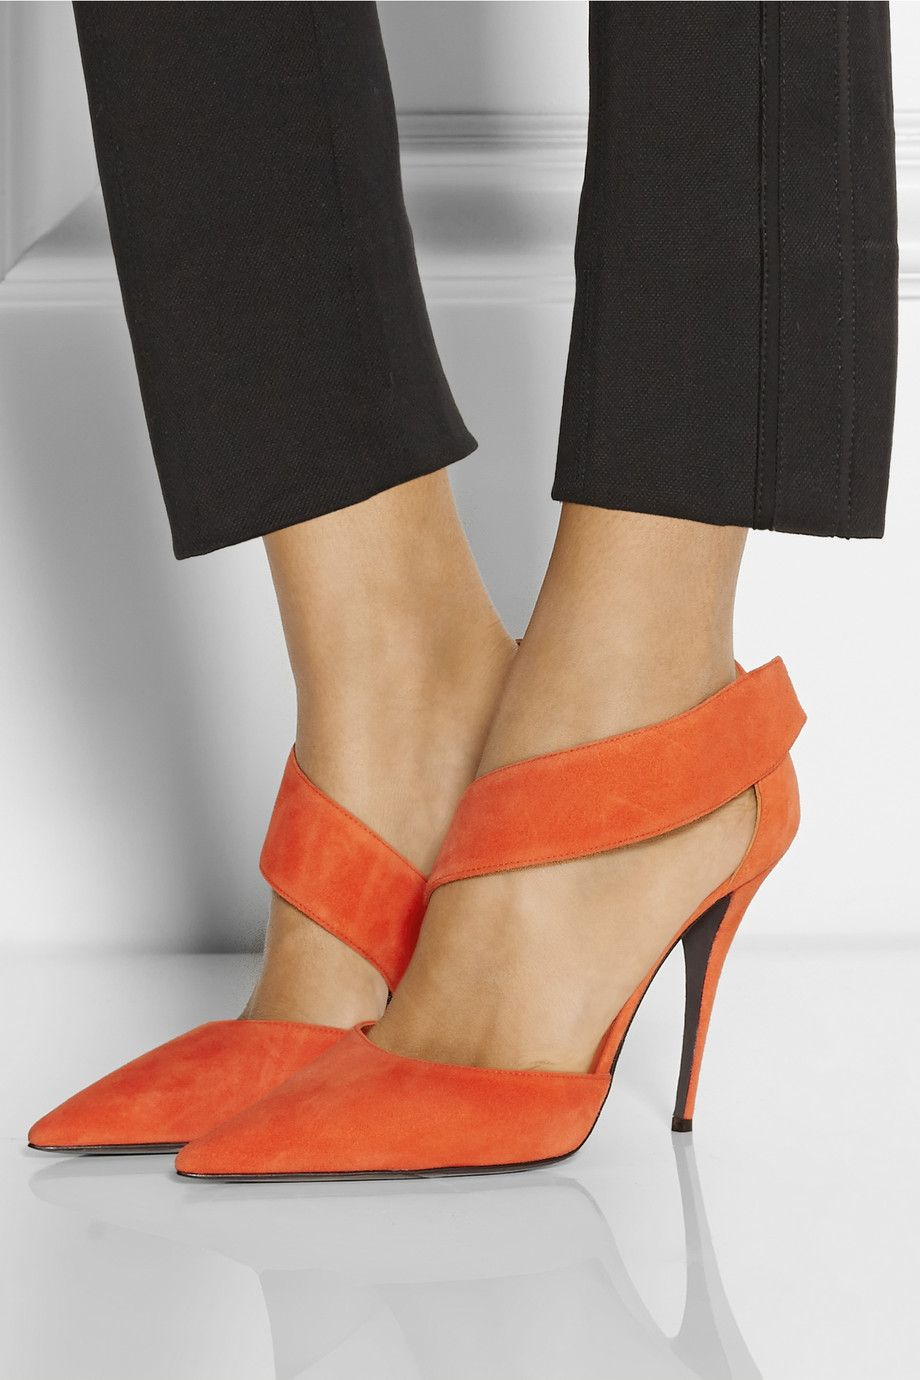 Narciso rodriguez Pumps q6xuhuGyj